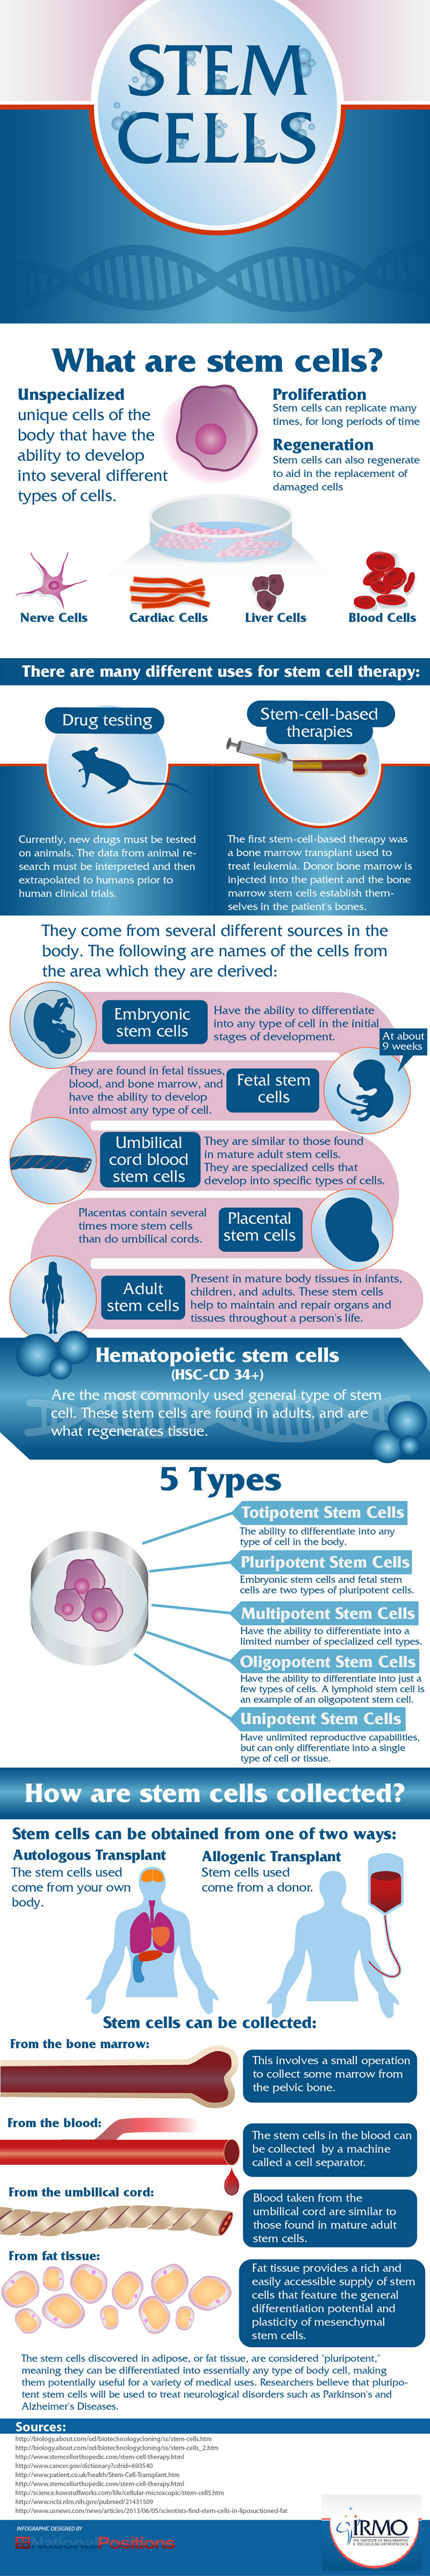 Guide to Stem Cells